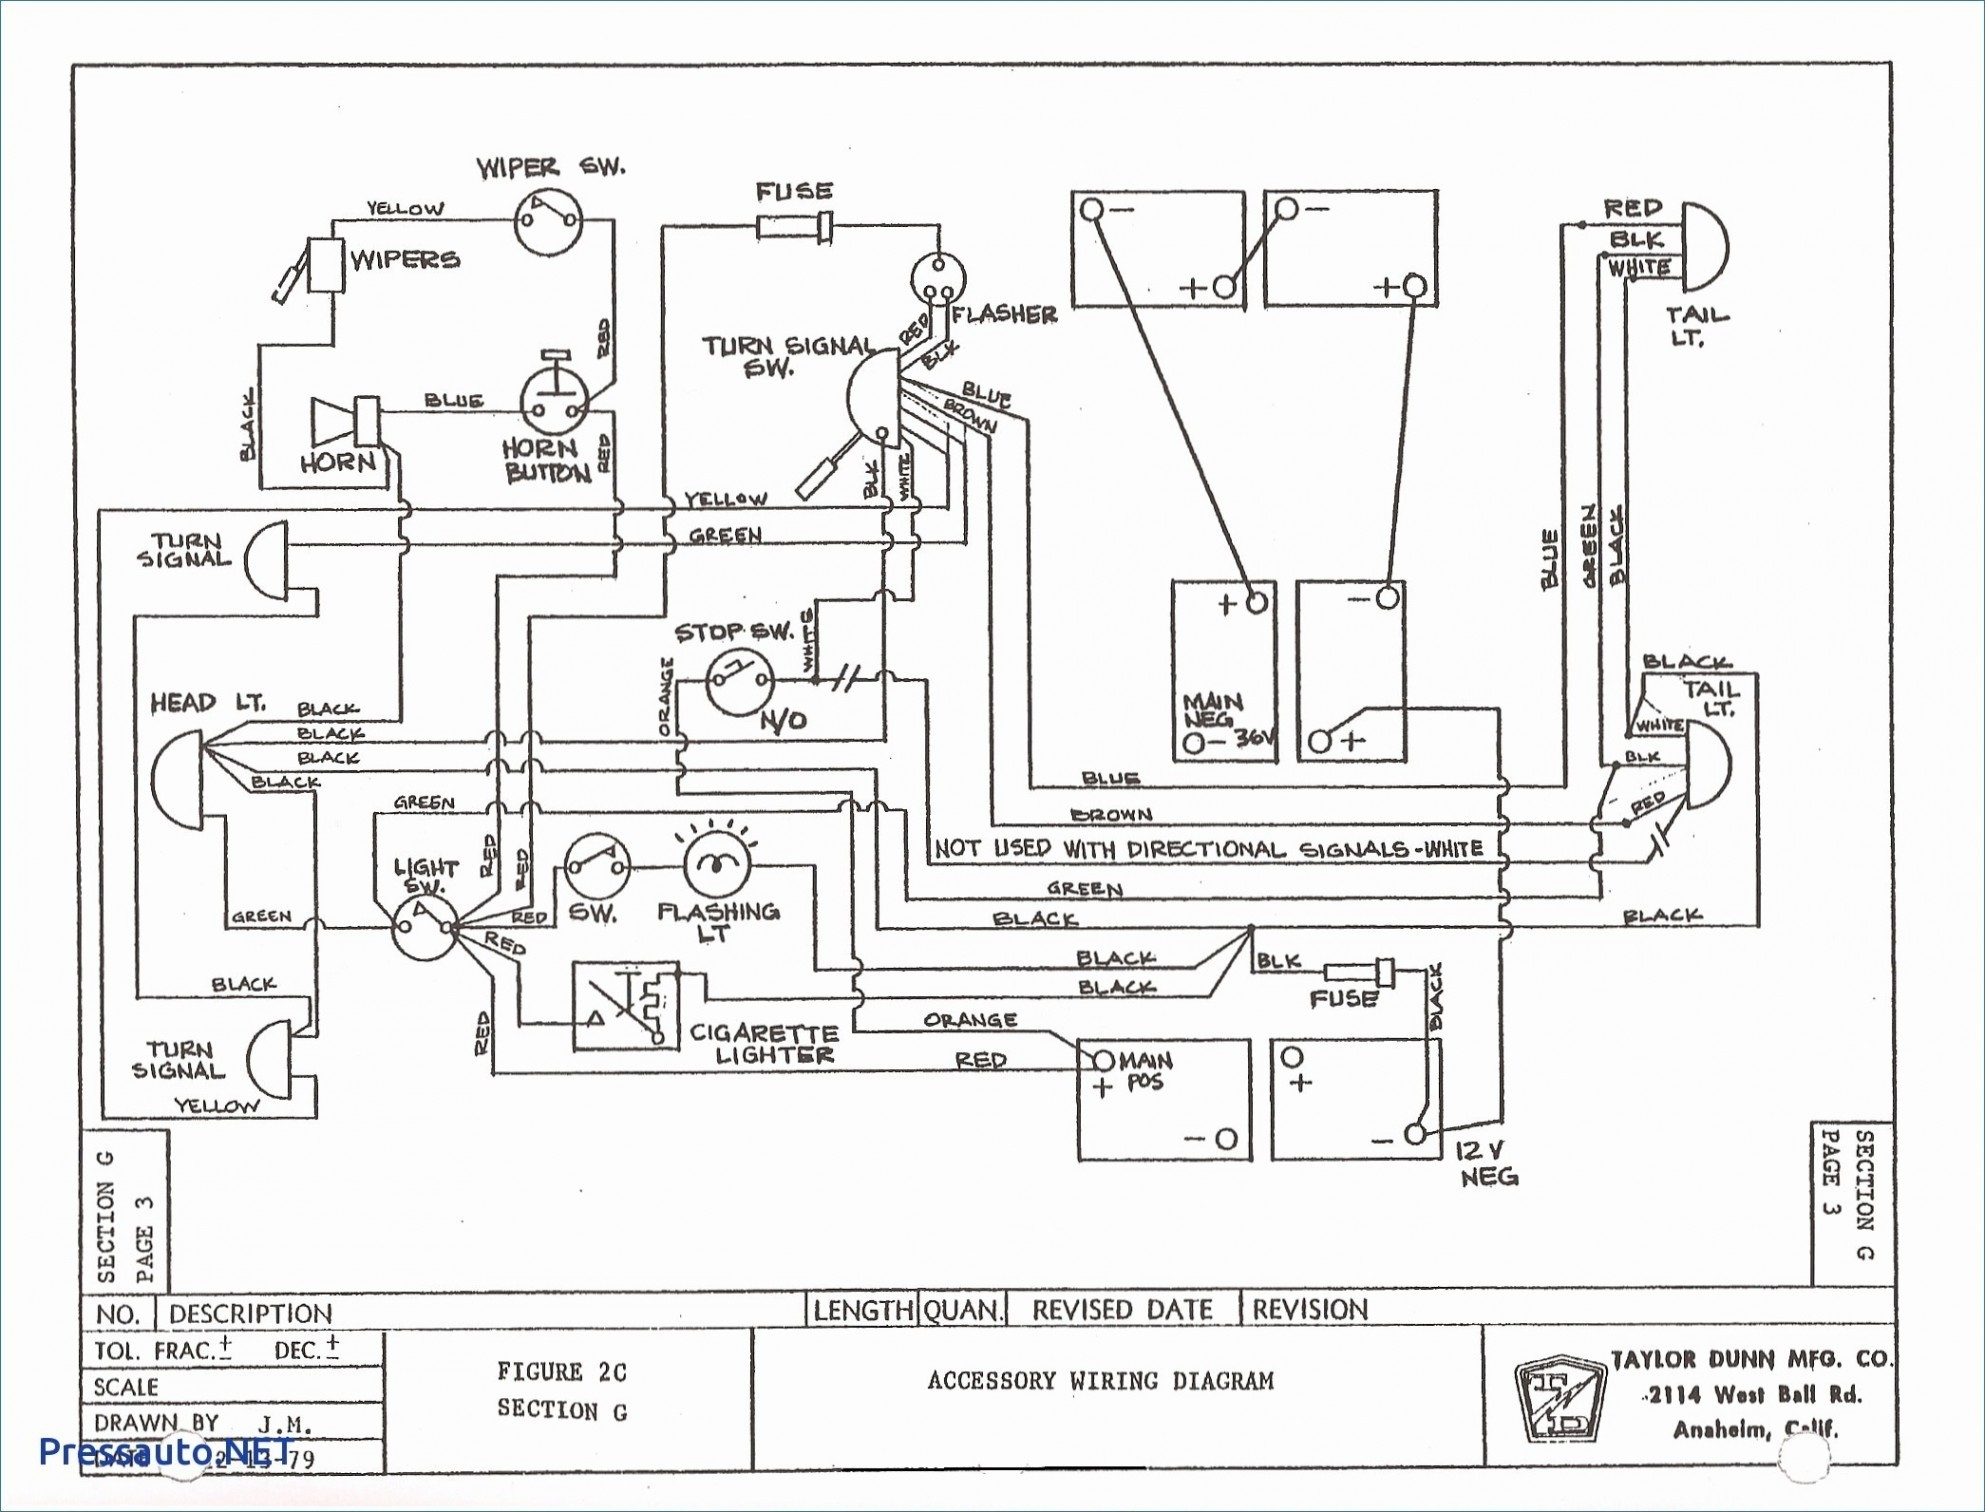 2001 Ez Go Golf Cart Wiring Diagram -99 Accord Engine Diagram | Begeboy Wiring  Diagram SourceBegeboy Wiring Diagram Source